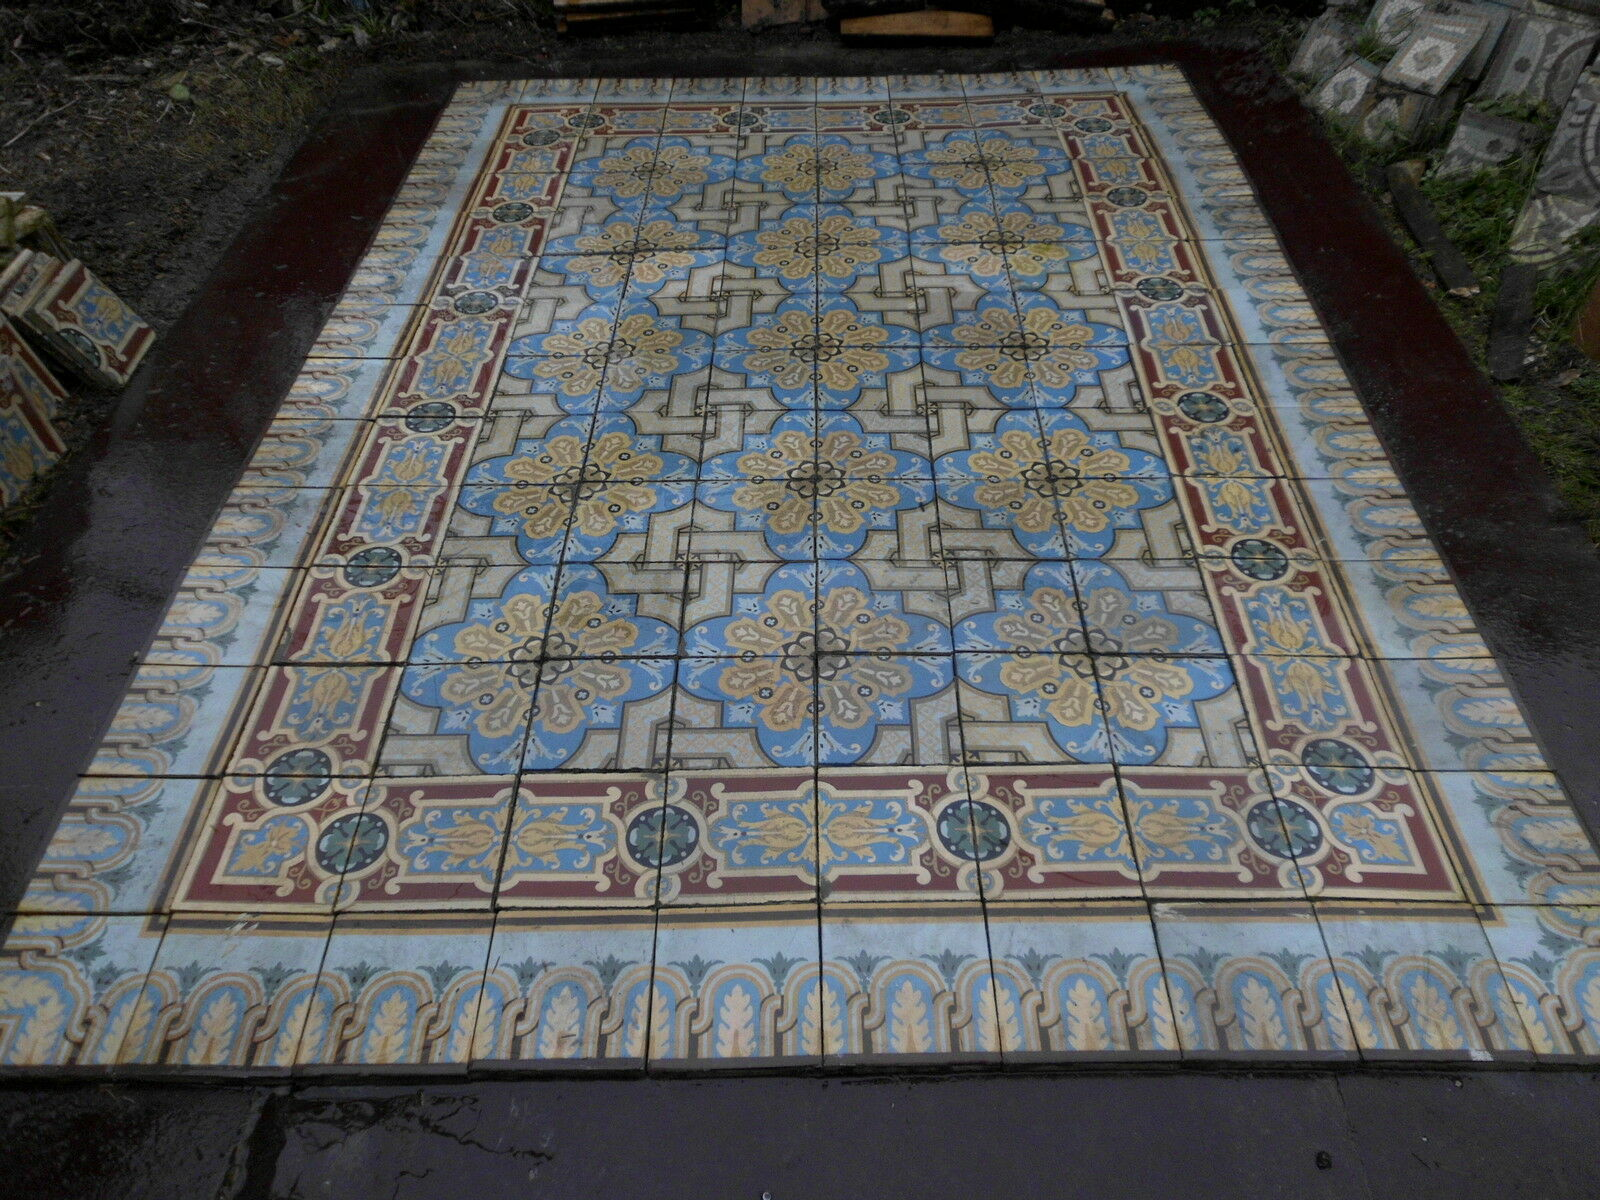 Carrelage ancien eur 2 00 picclick be for Ancien carrelage